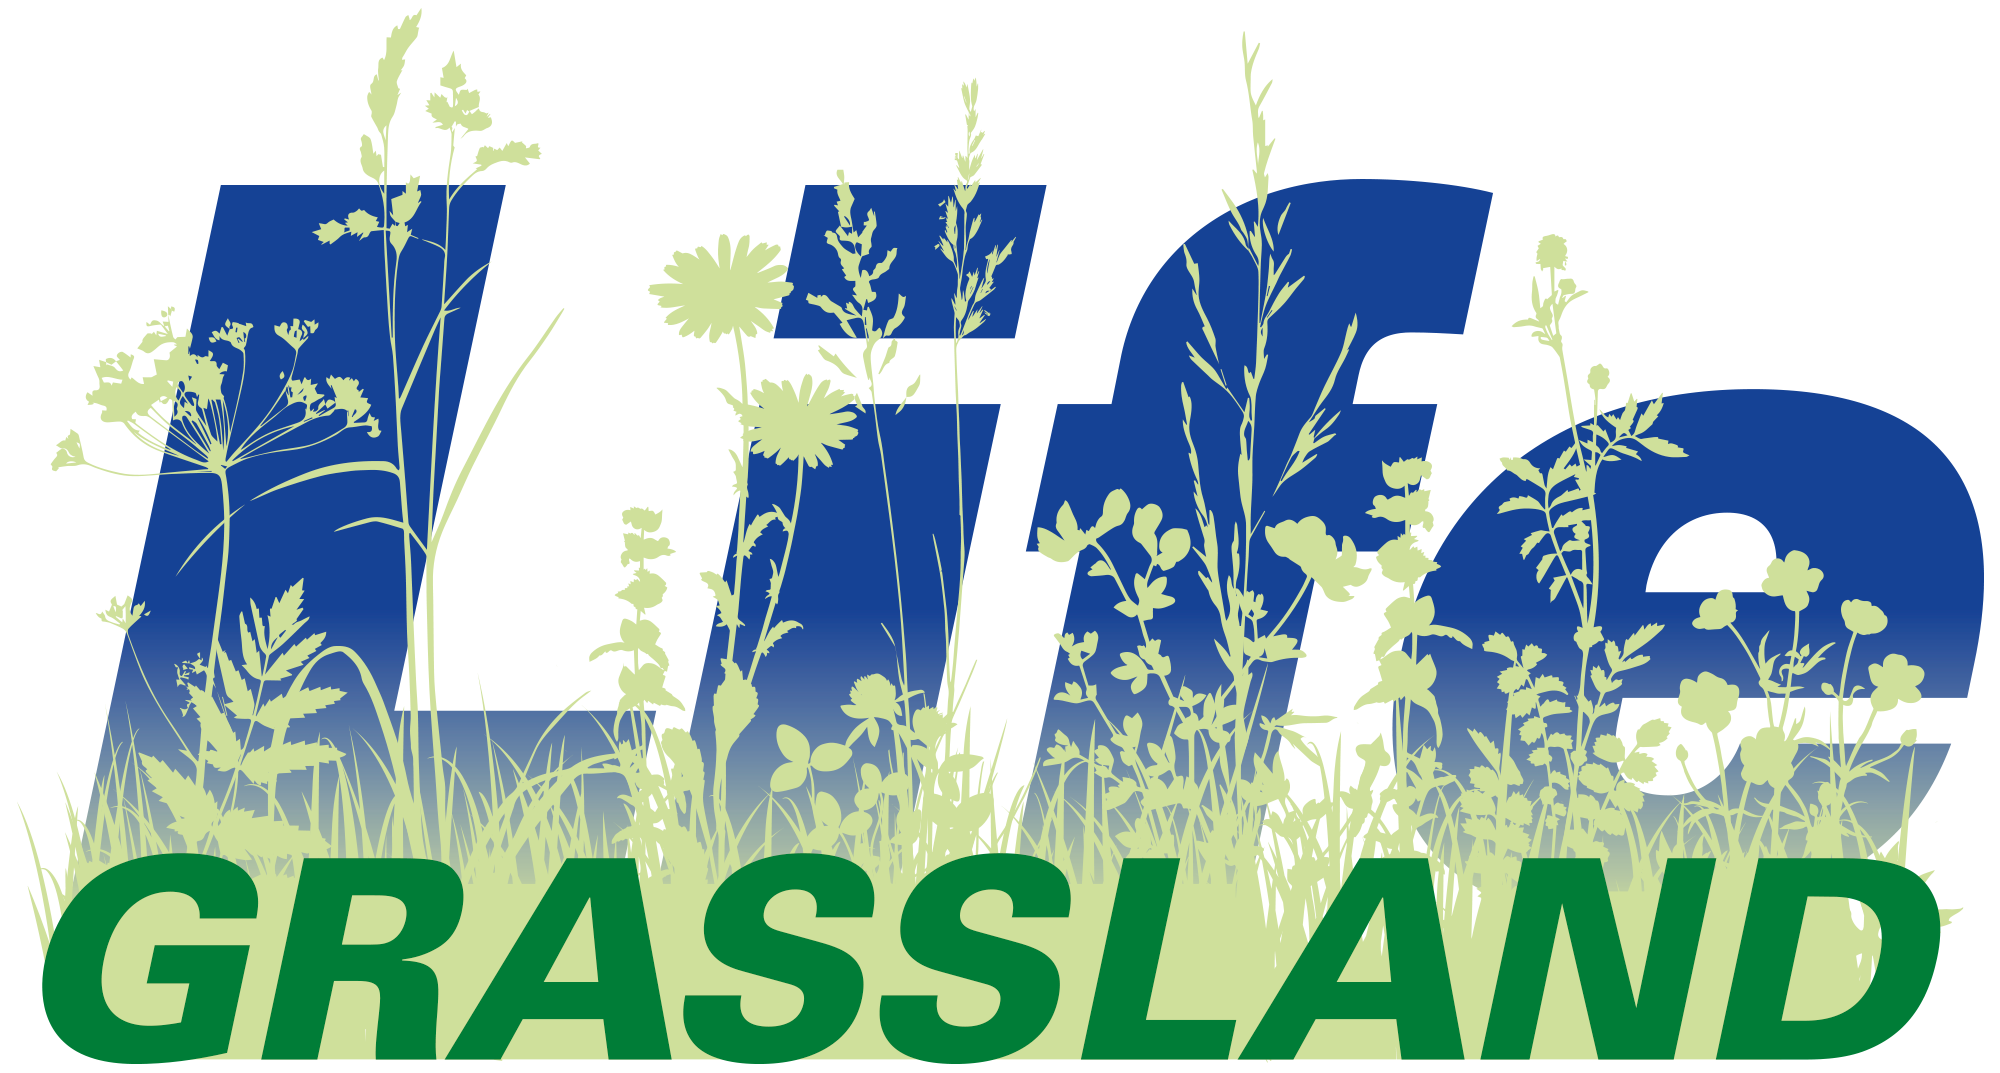 http://www.life-grassland.info/the-project/